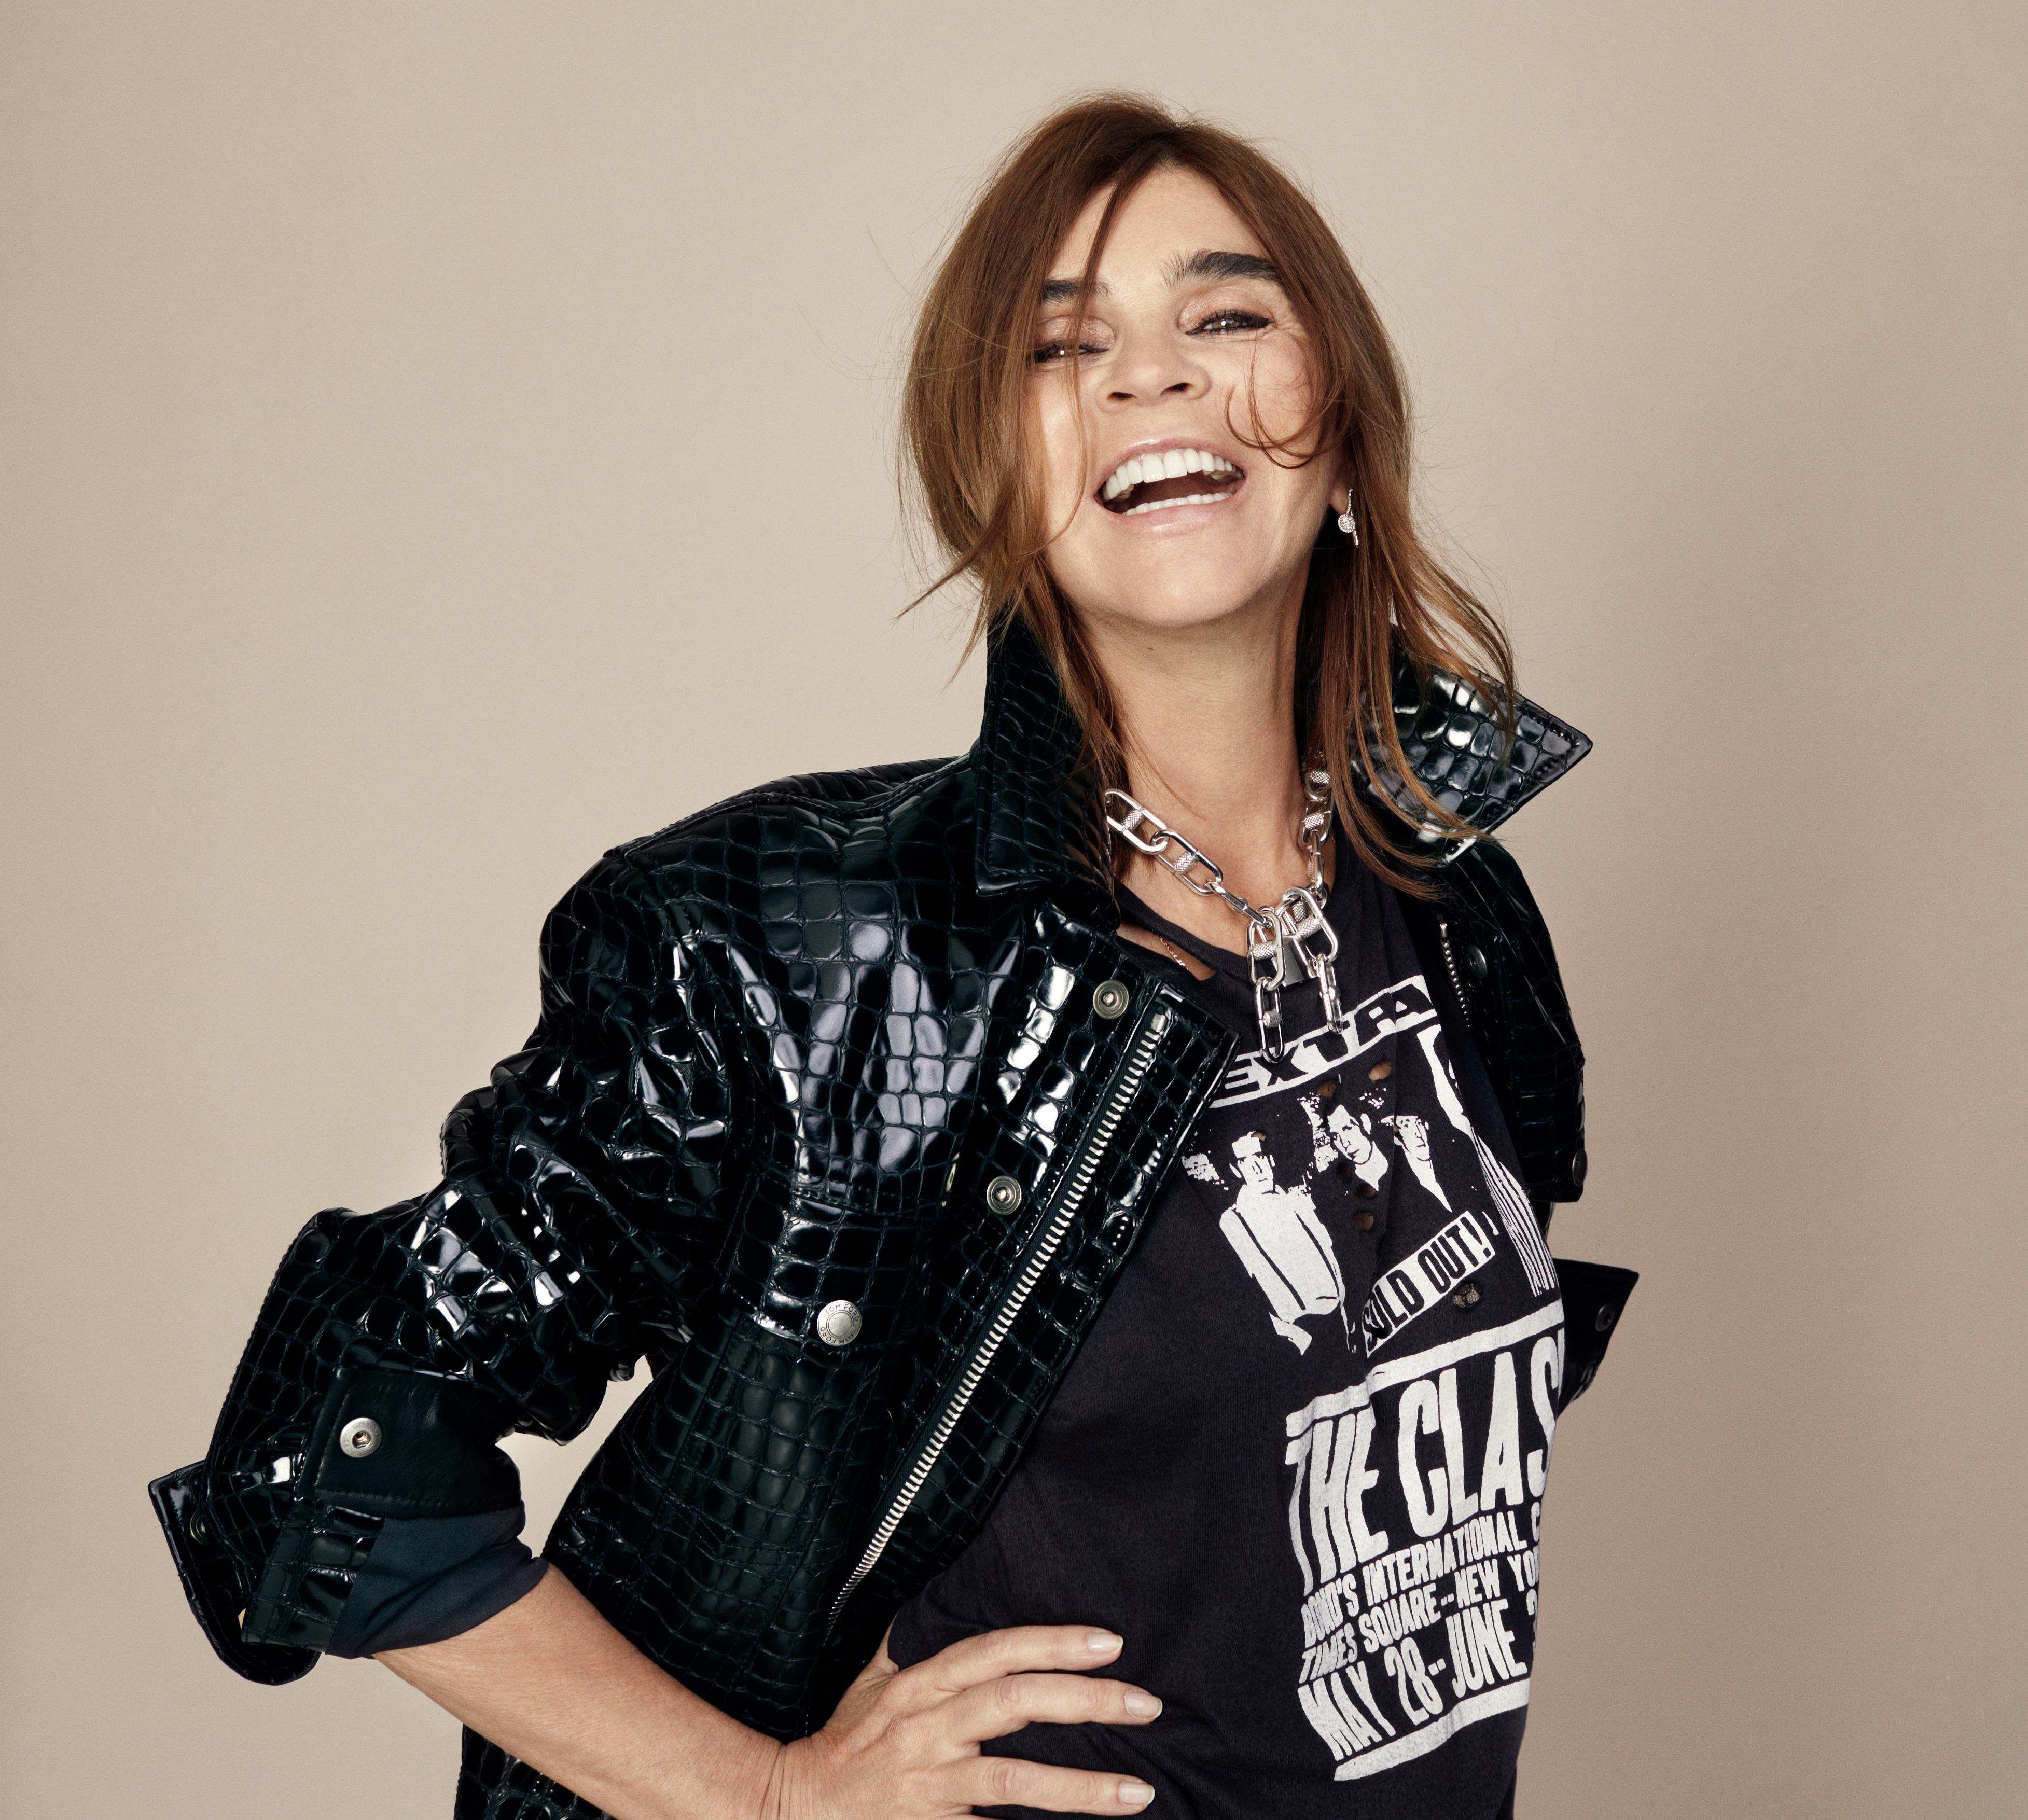 Carine Roitfeld: 'Drink espresso, sleep in your makeup, don't take selfies…'